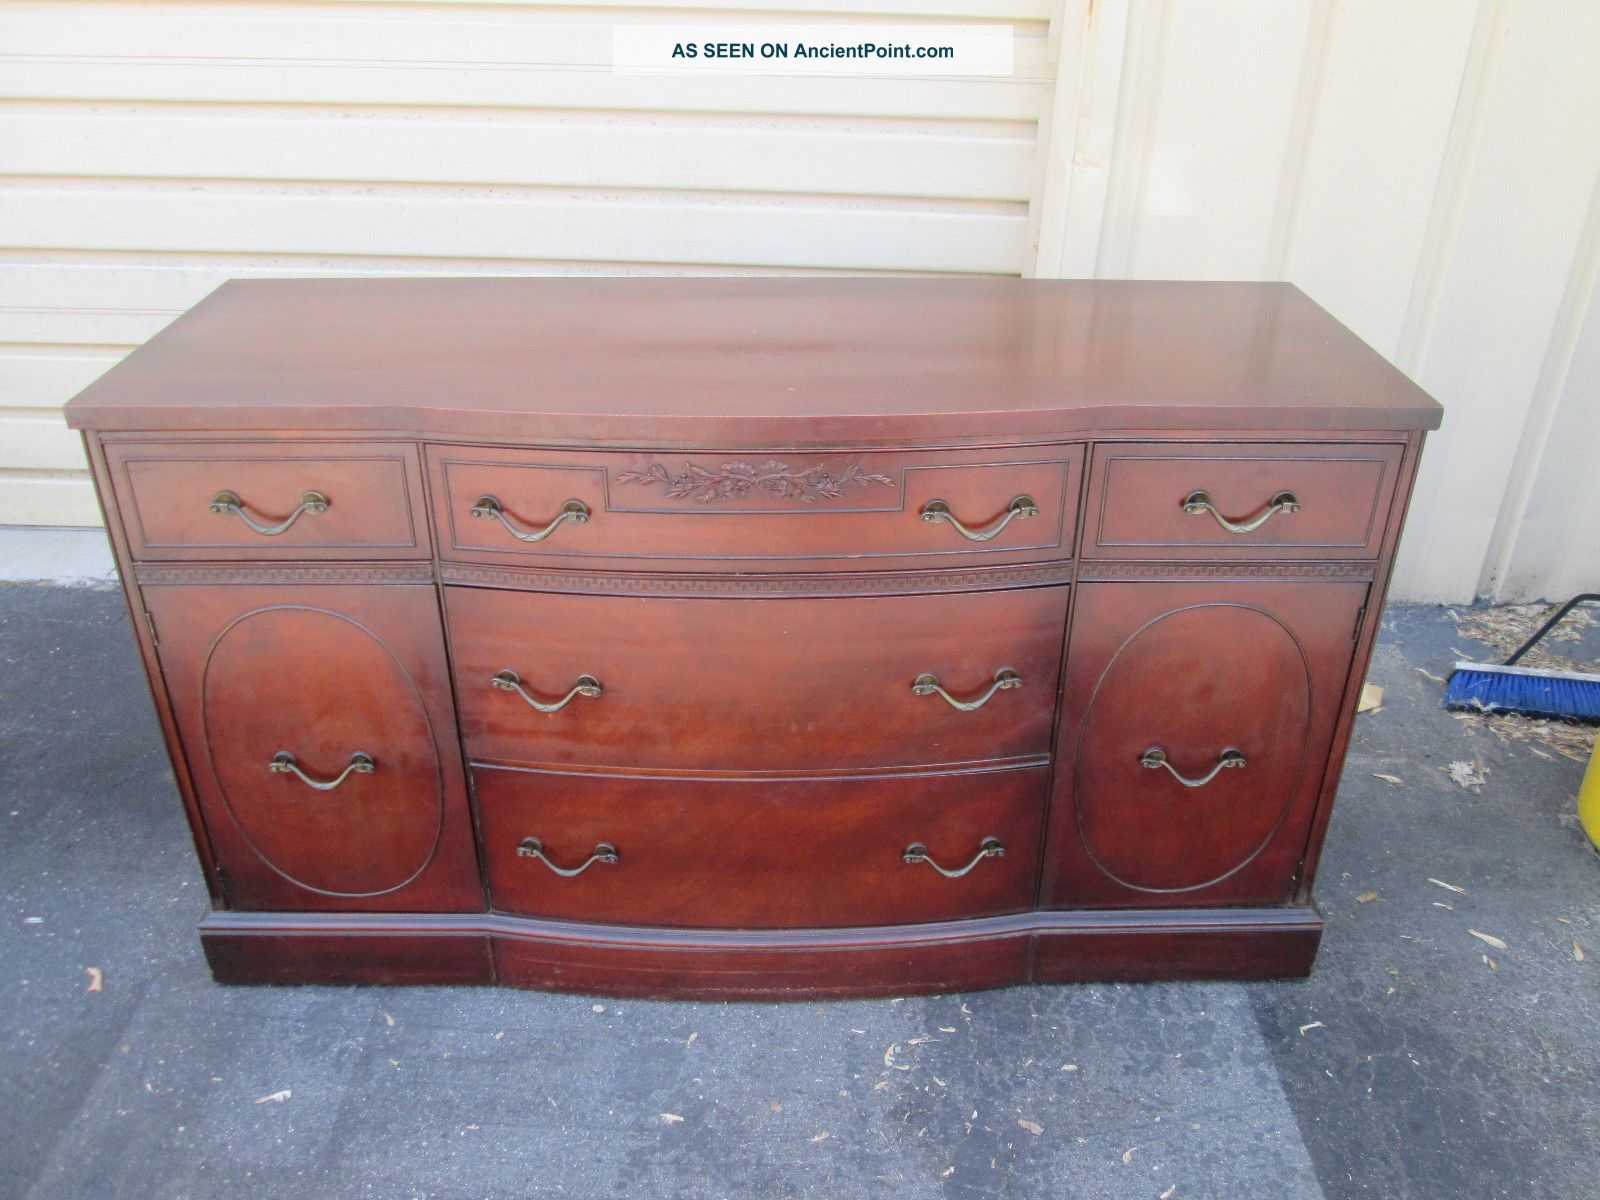 55378 Antique Mahogany Sideboard Buffet Server Cabinet 1900-1950 photo